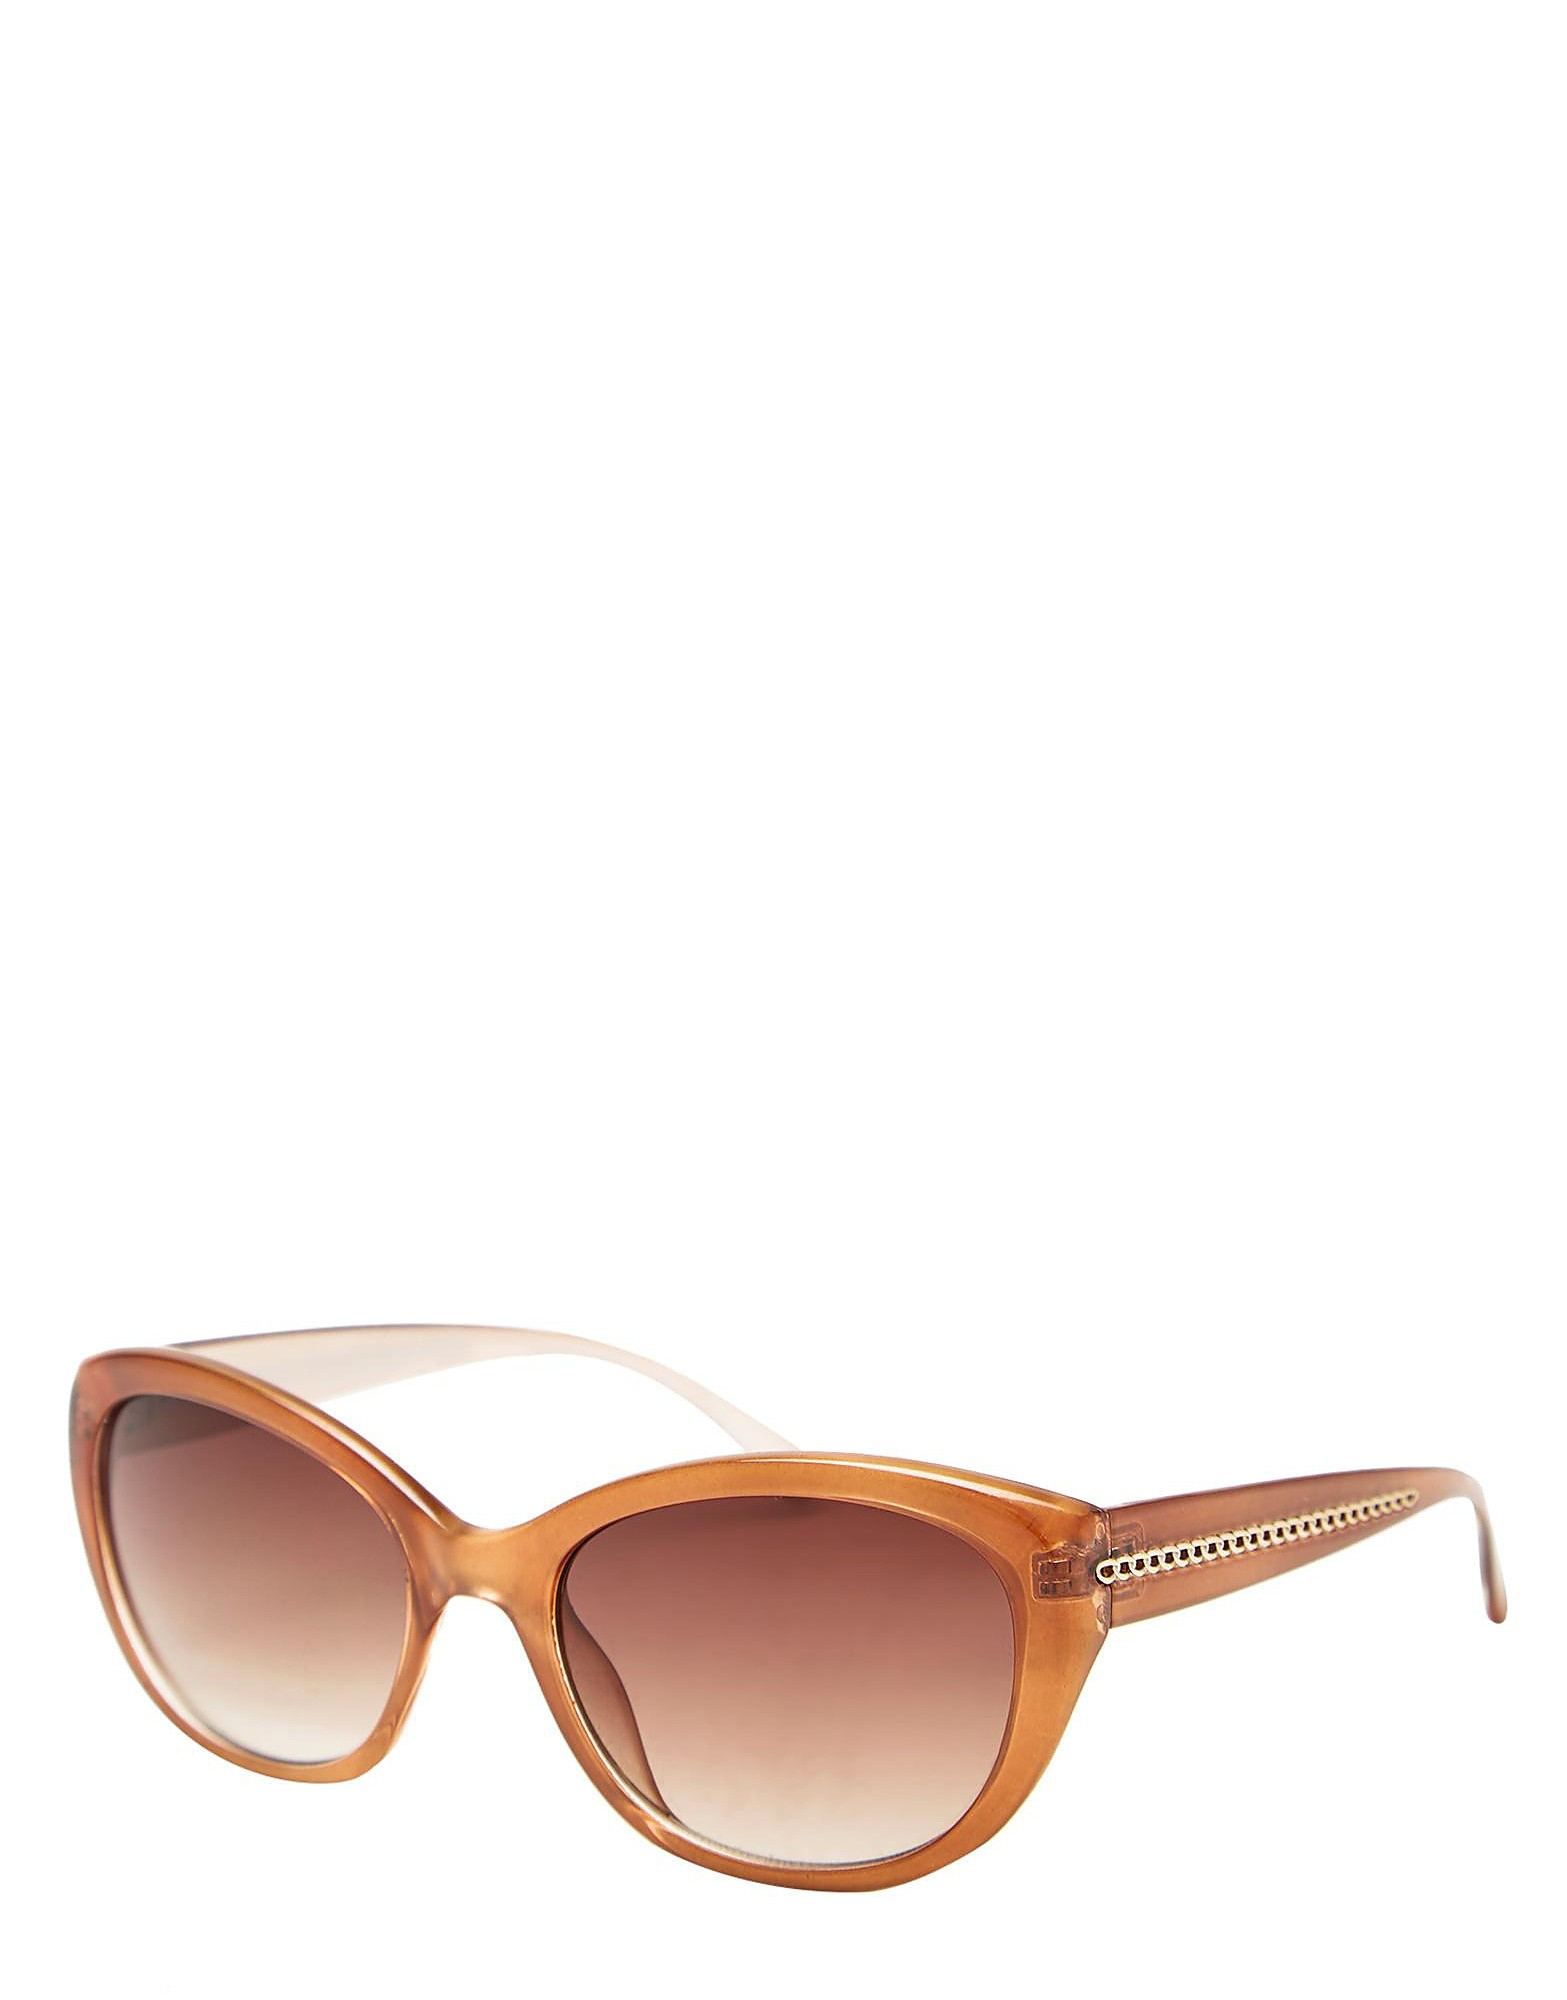 Brookhaven Alex Sunglasses - Only at JD - Mid Brown - Womens, Mid Brown